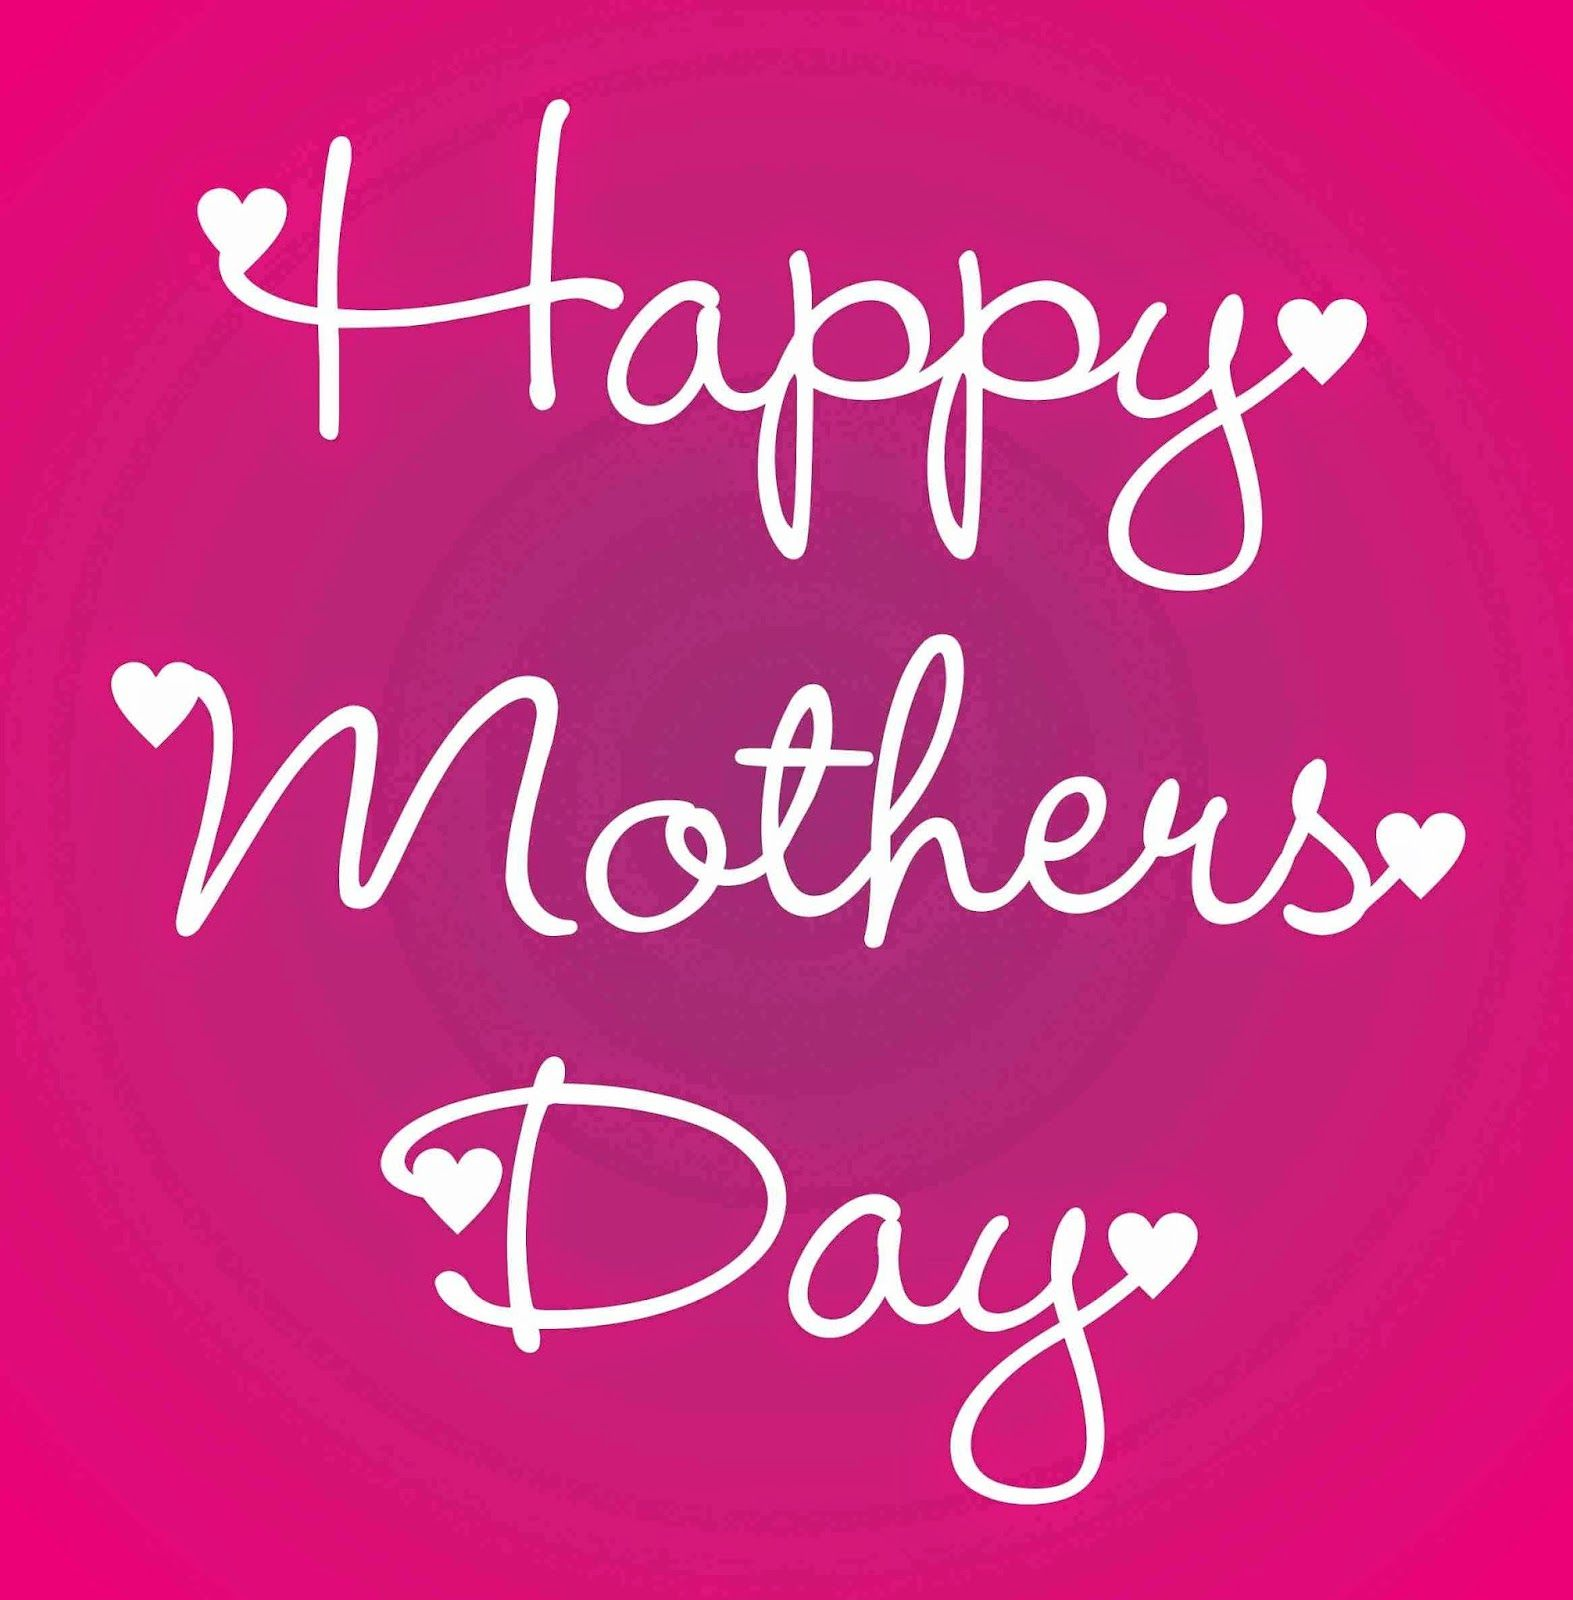 Happy mothers day greetings quotes messages sms wishes happy mothers day greetings quotes messages sms wishes cards kristyandbryce Image collections